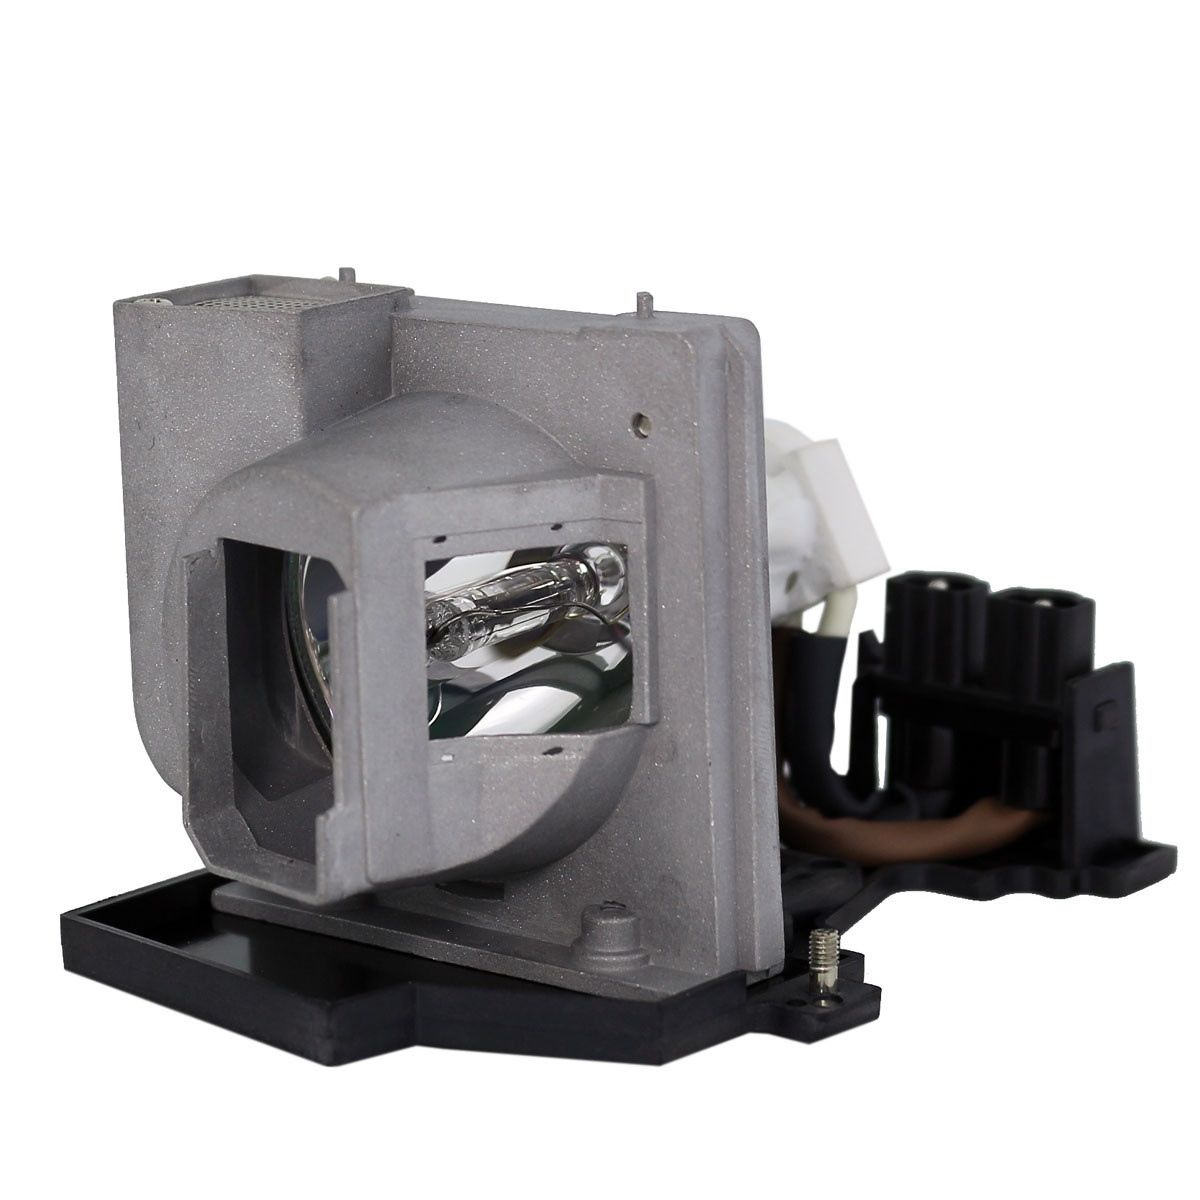 Projector Lamp Bulb EC.J4301.001 for Acer XD1280 XD1280D with housing